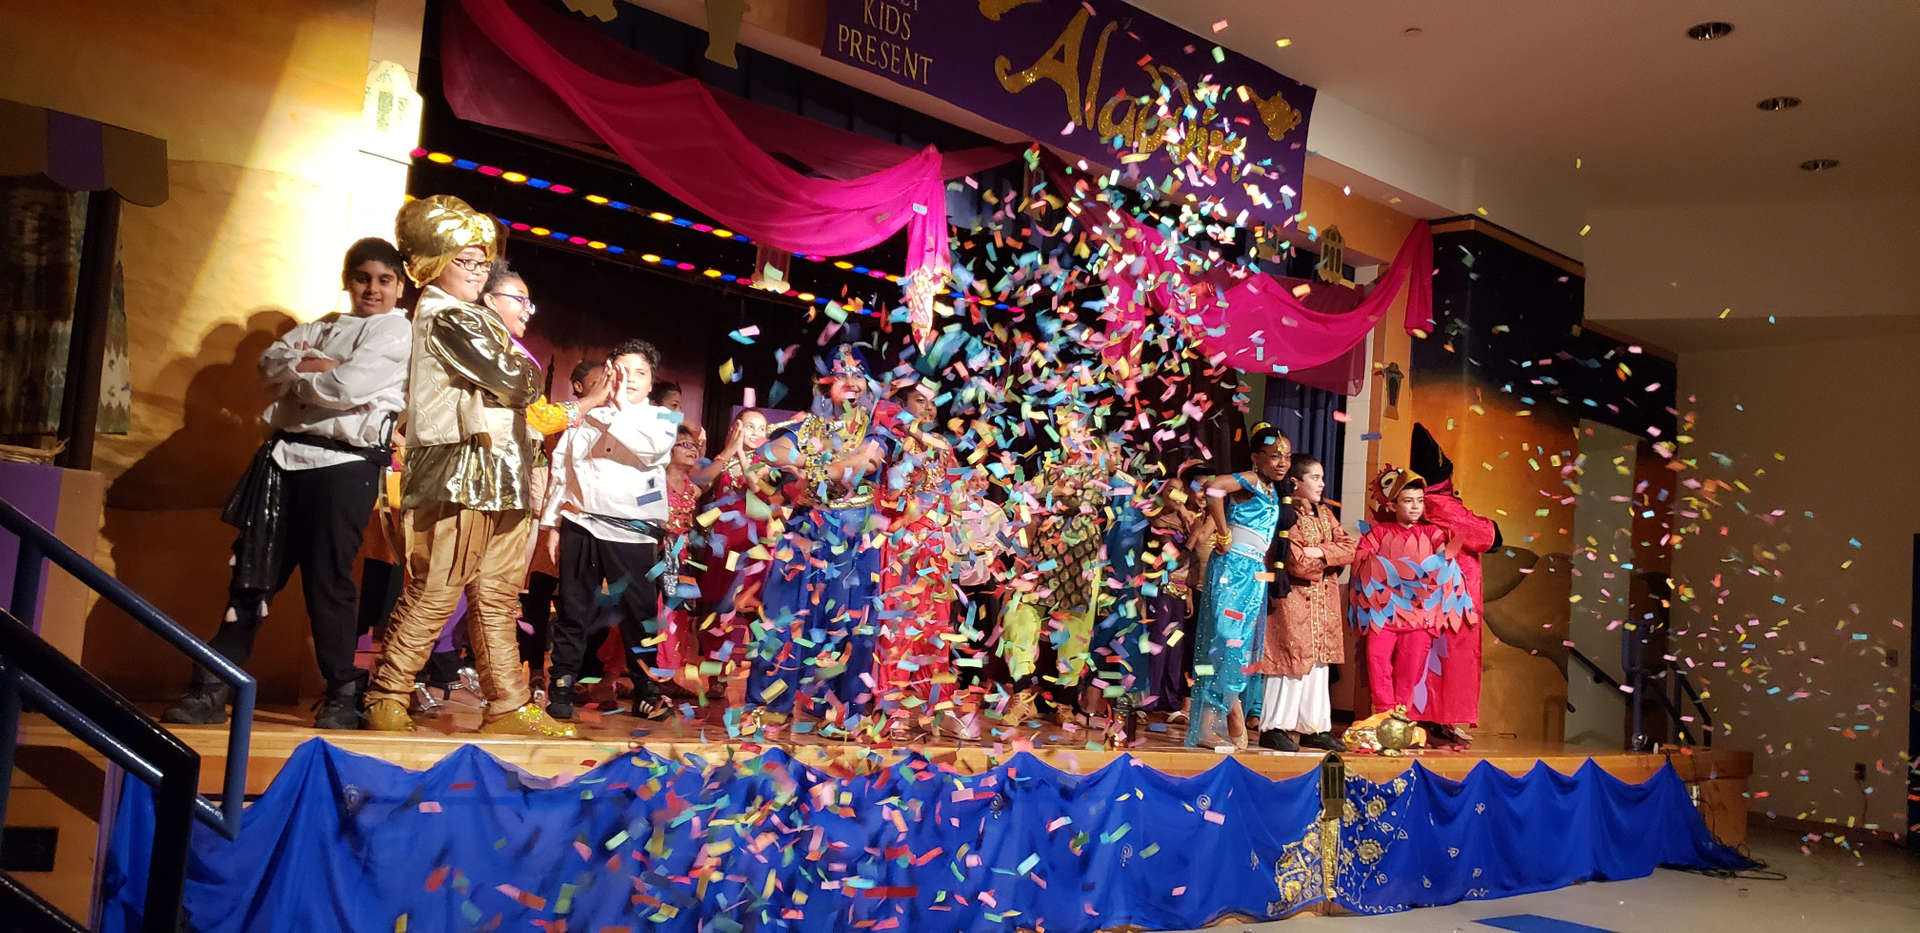 students last curtain bow with confetti in air